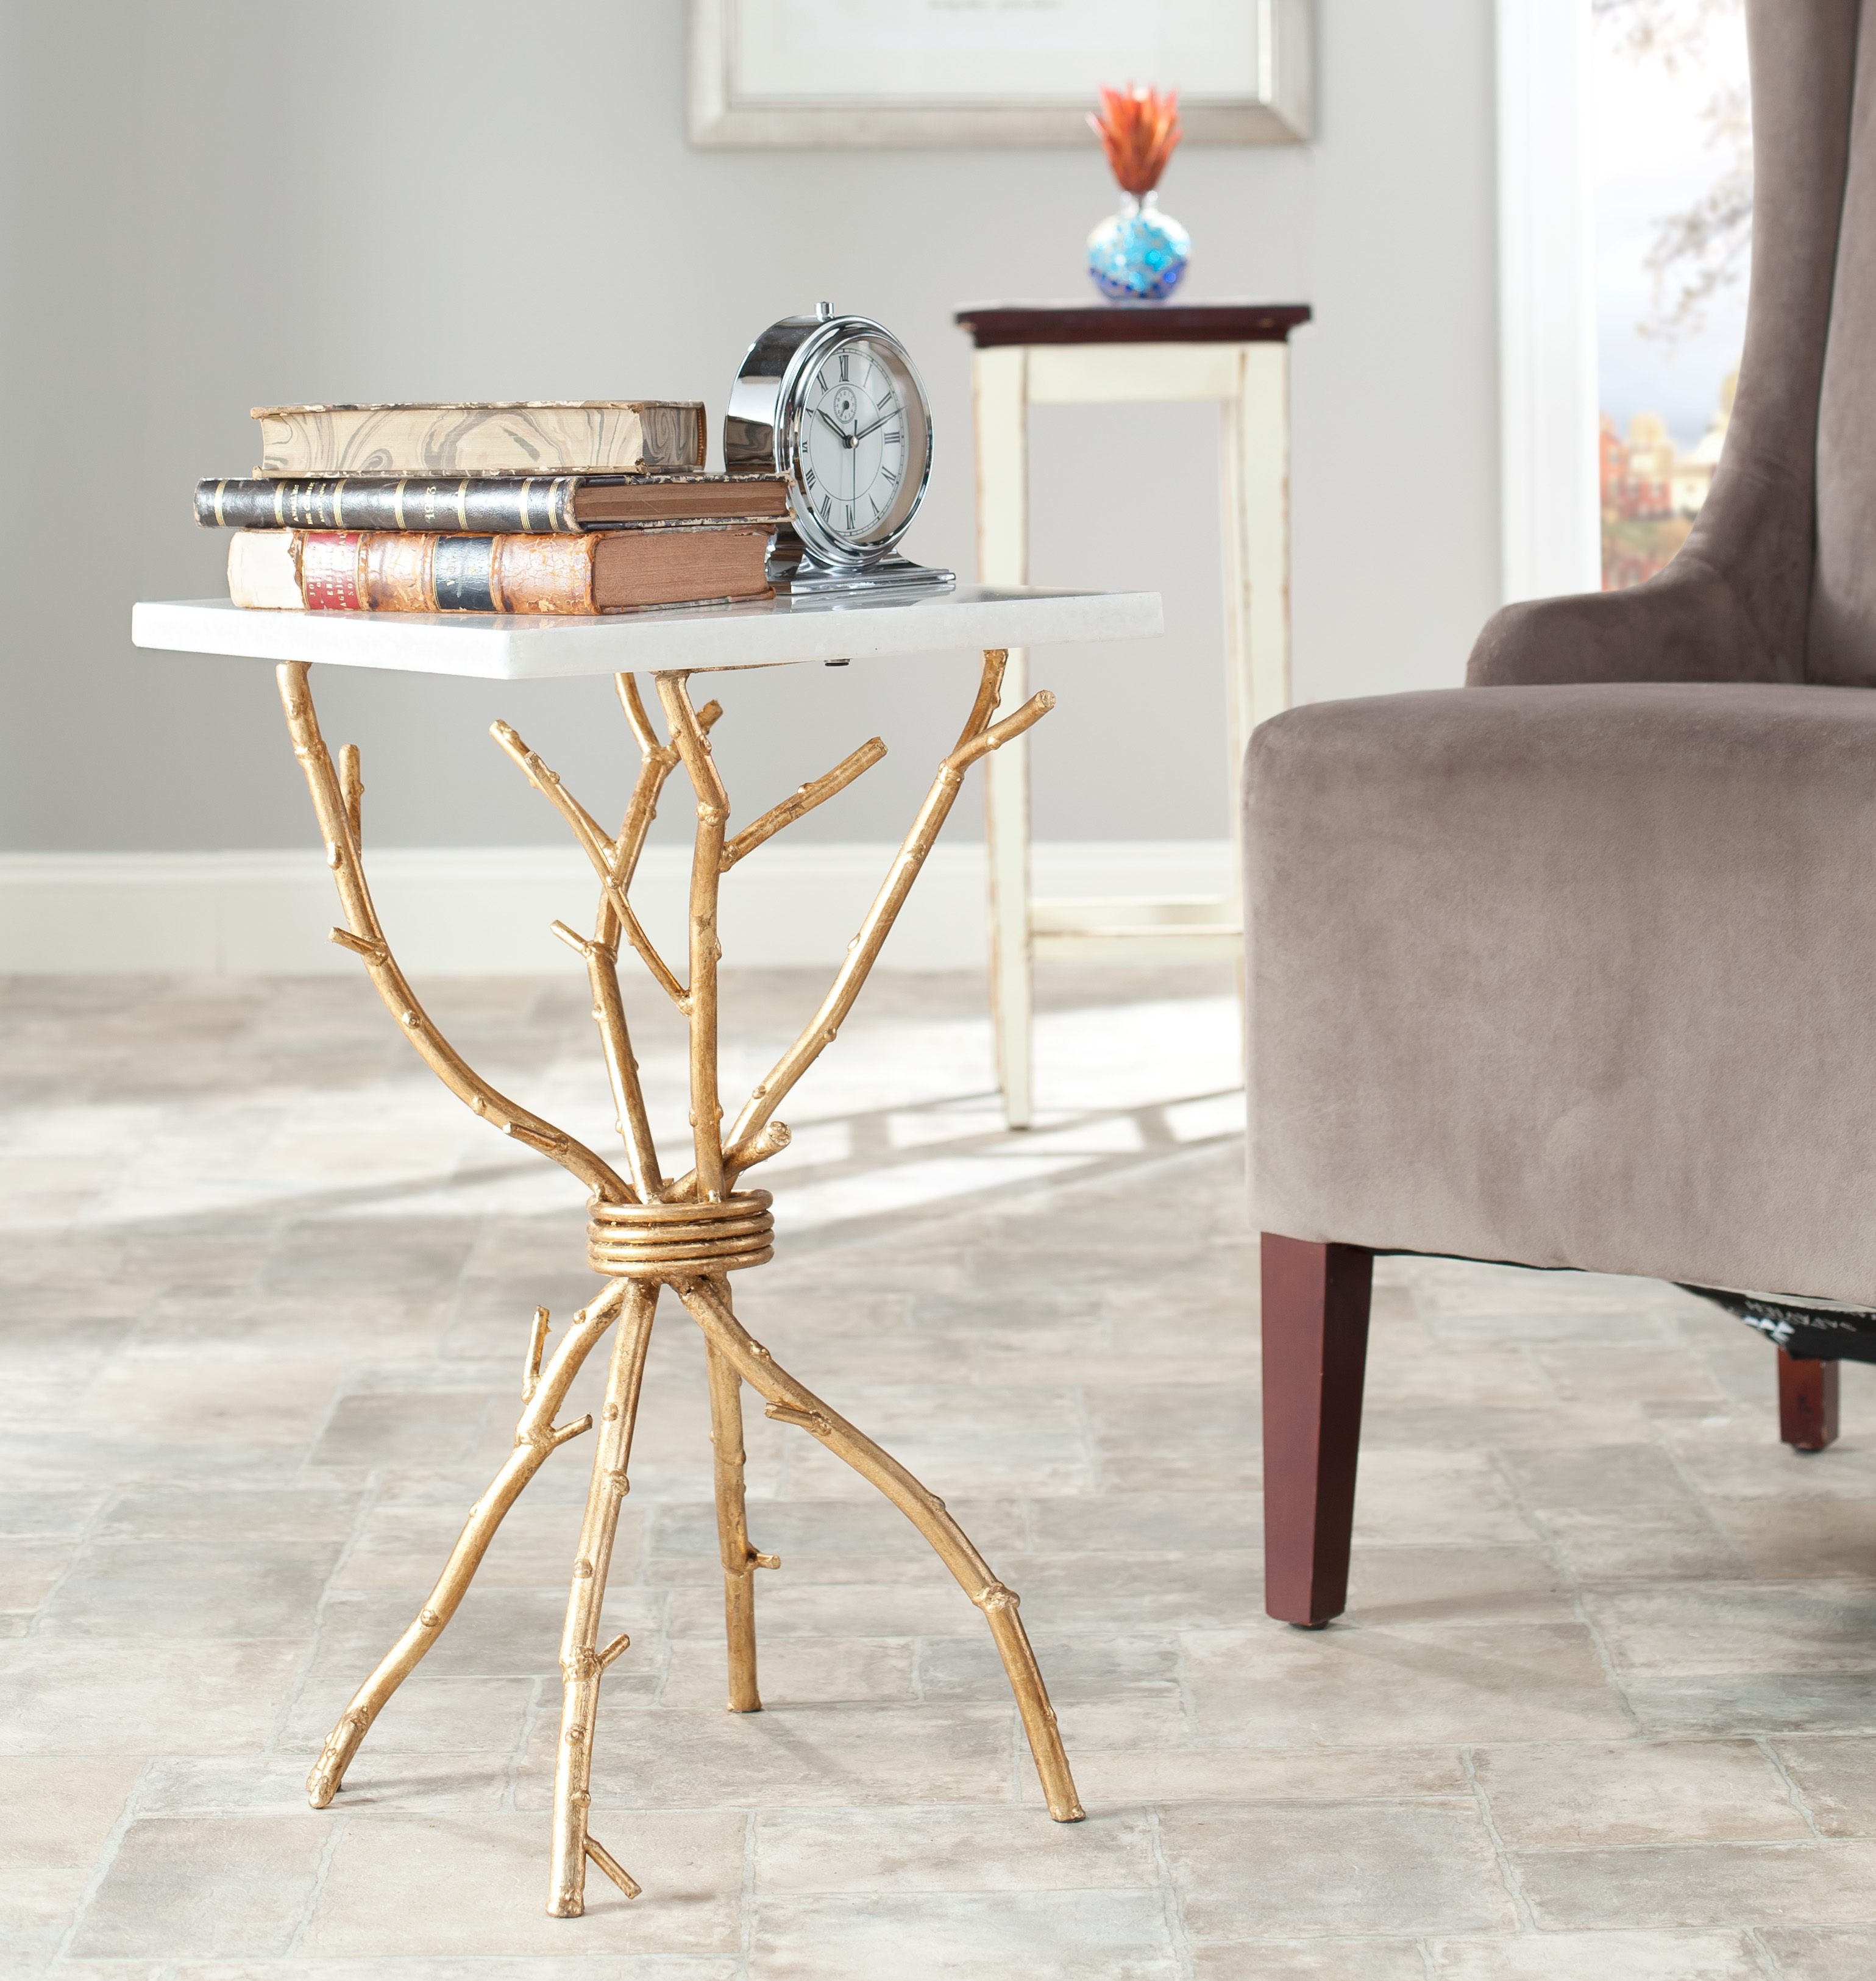 safavieh alexa mabrle top gold accent table prod faux wood narrow farm outdoor bistro target chalk paint crystal lamps white barn door dining nate berkus marble coffee tall oak